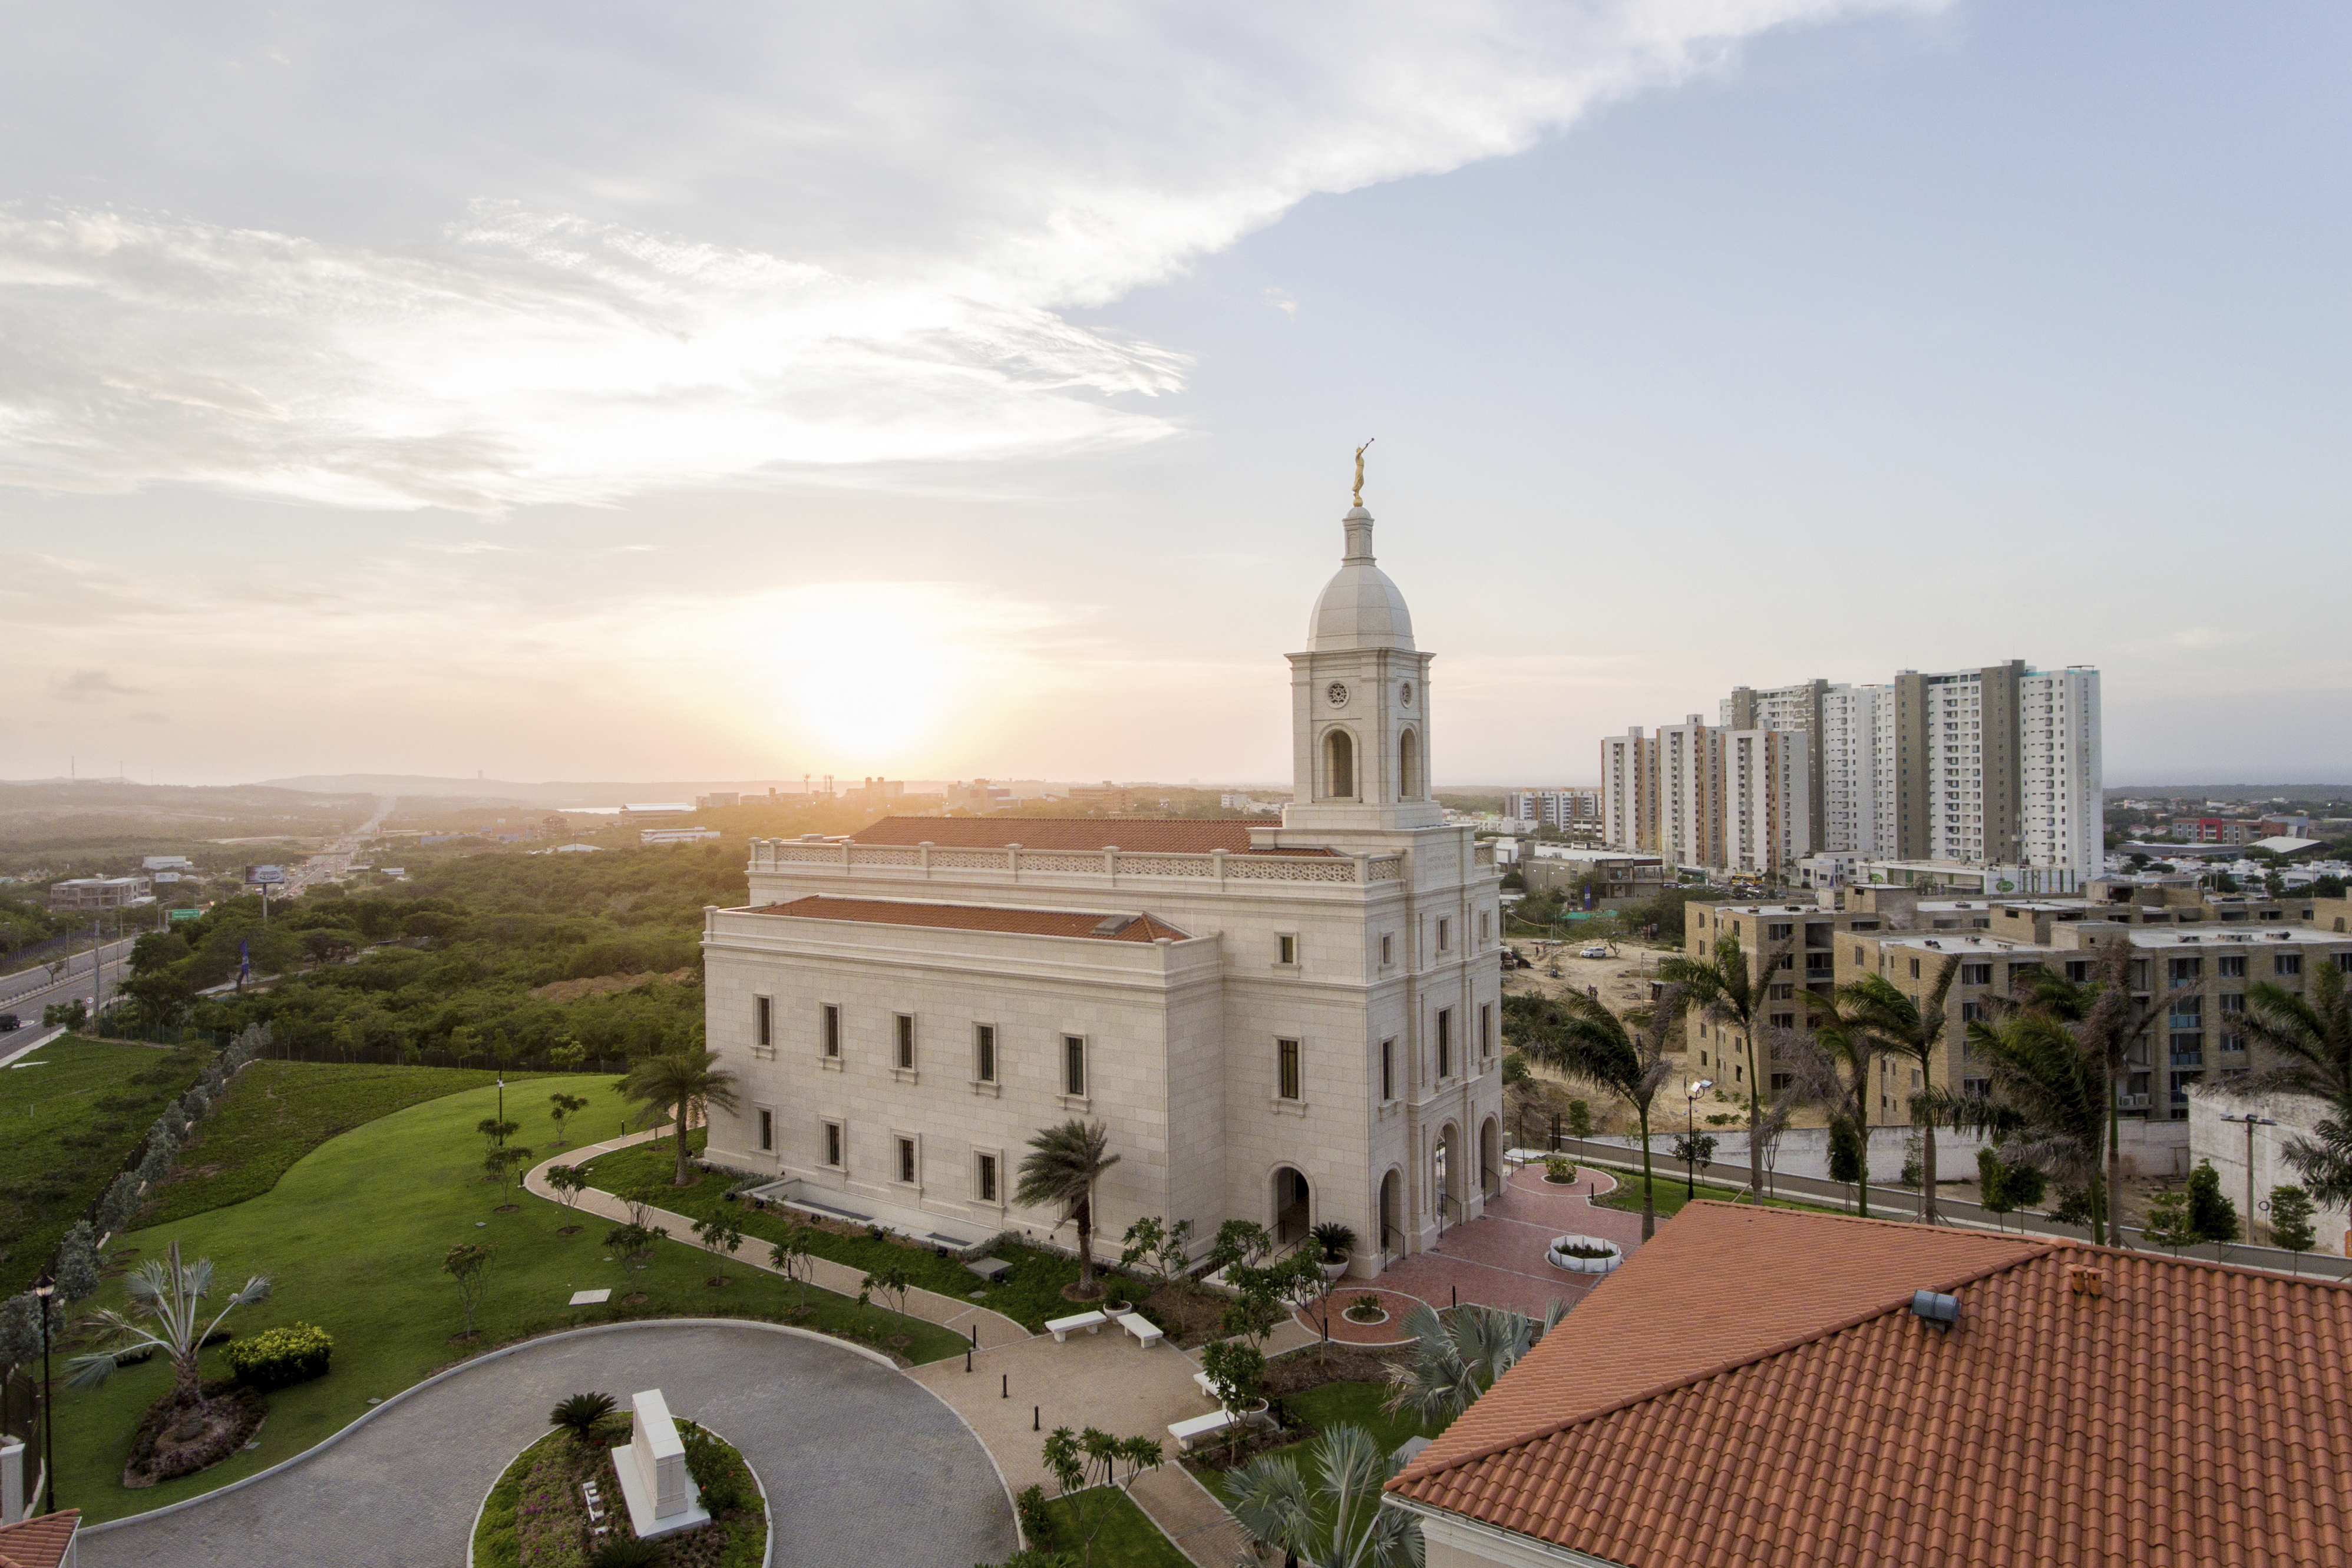 A side view of the entire Barranquilla Colombia Temple, surrounded by landscaping and city buildings.